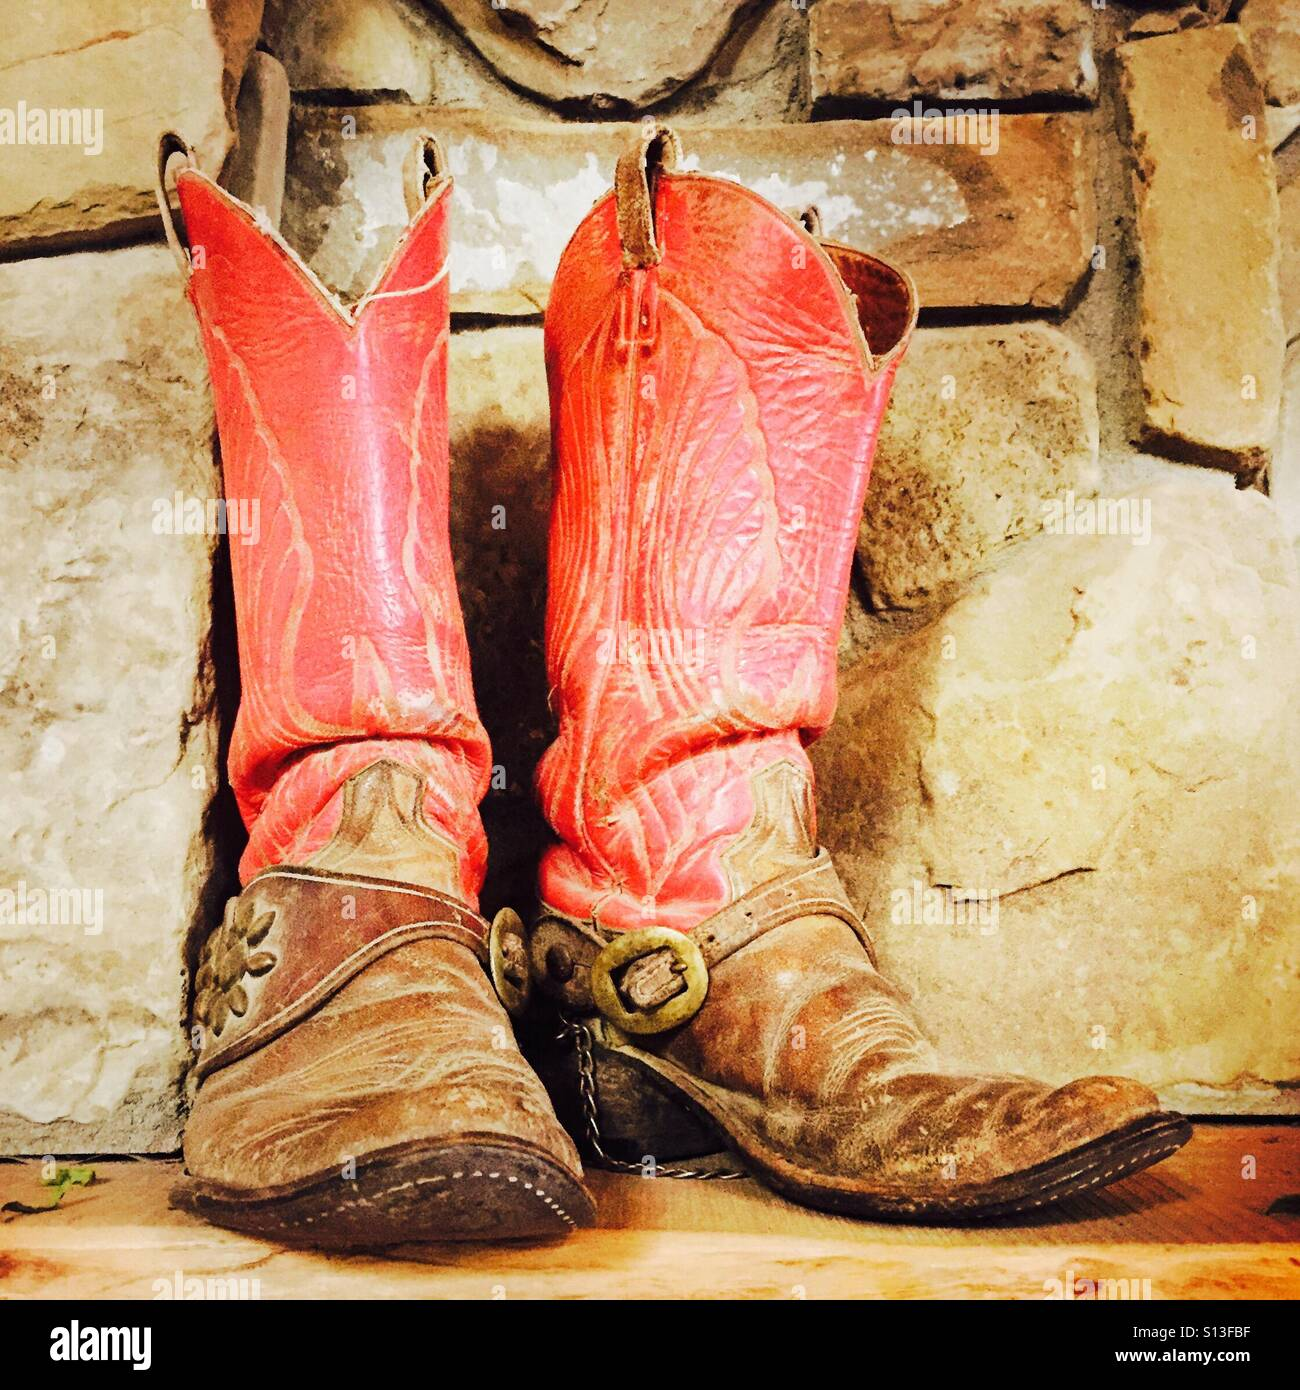 572bb9b8af8 An old worn out pair of cowboy boots Stock Photo: 310479219 - Alamy